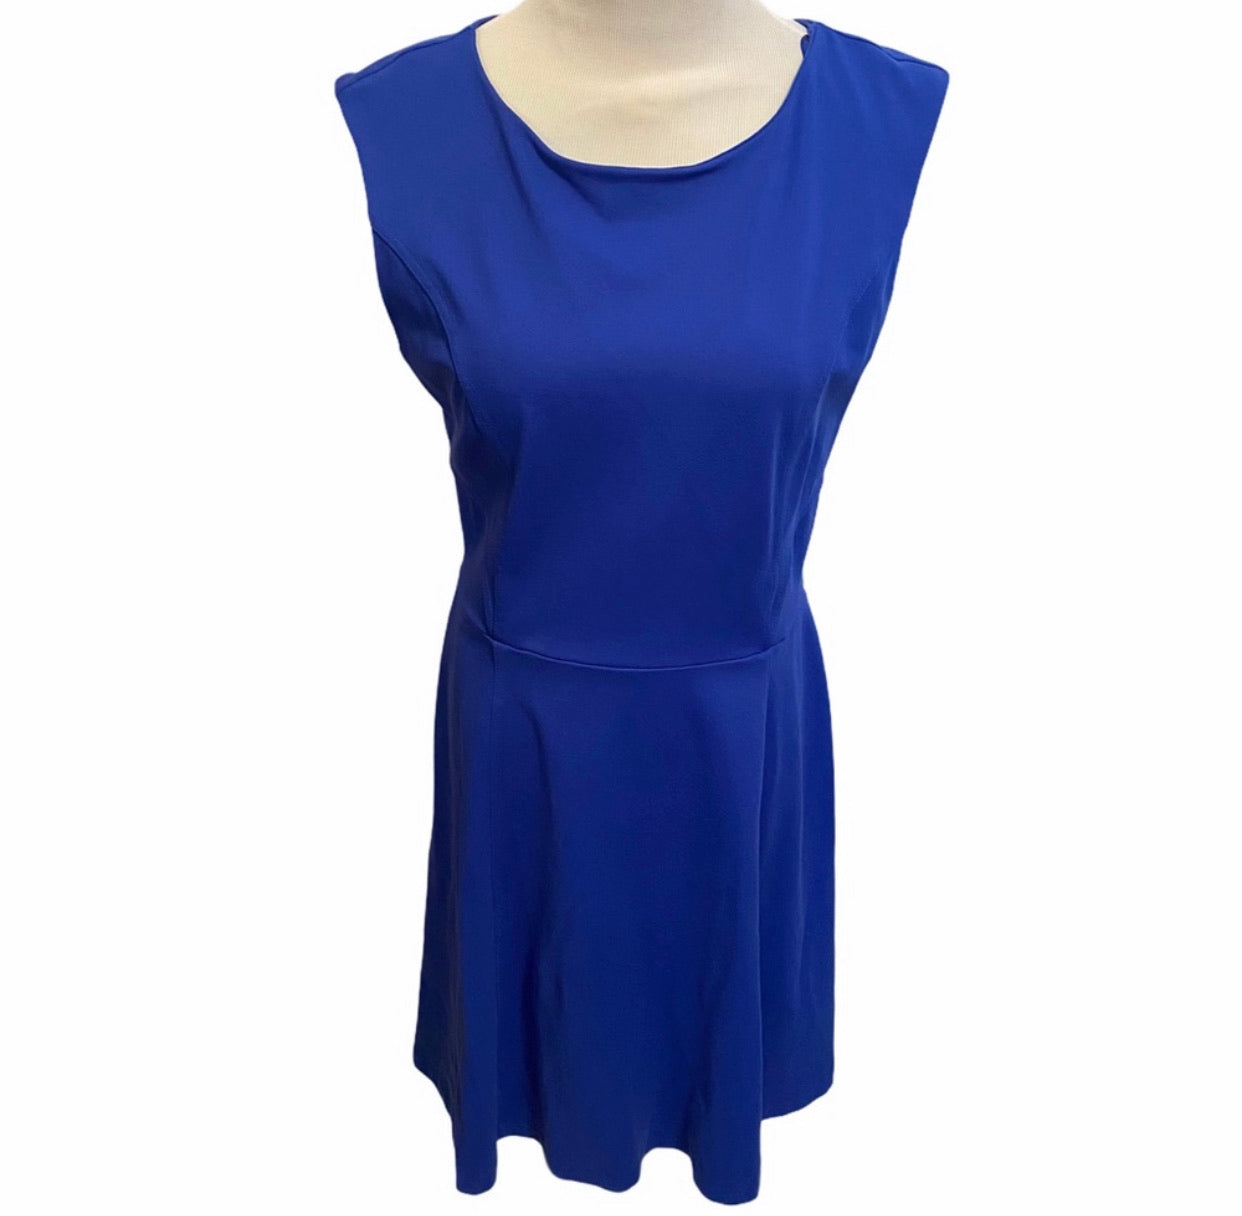 Blue dress size 6